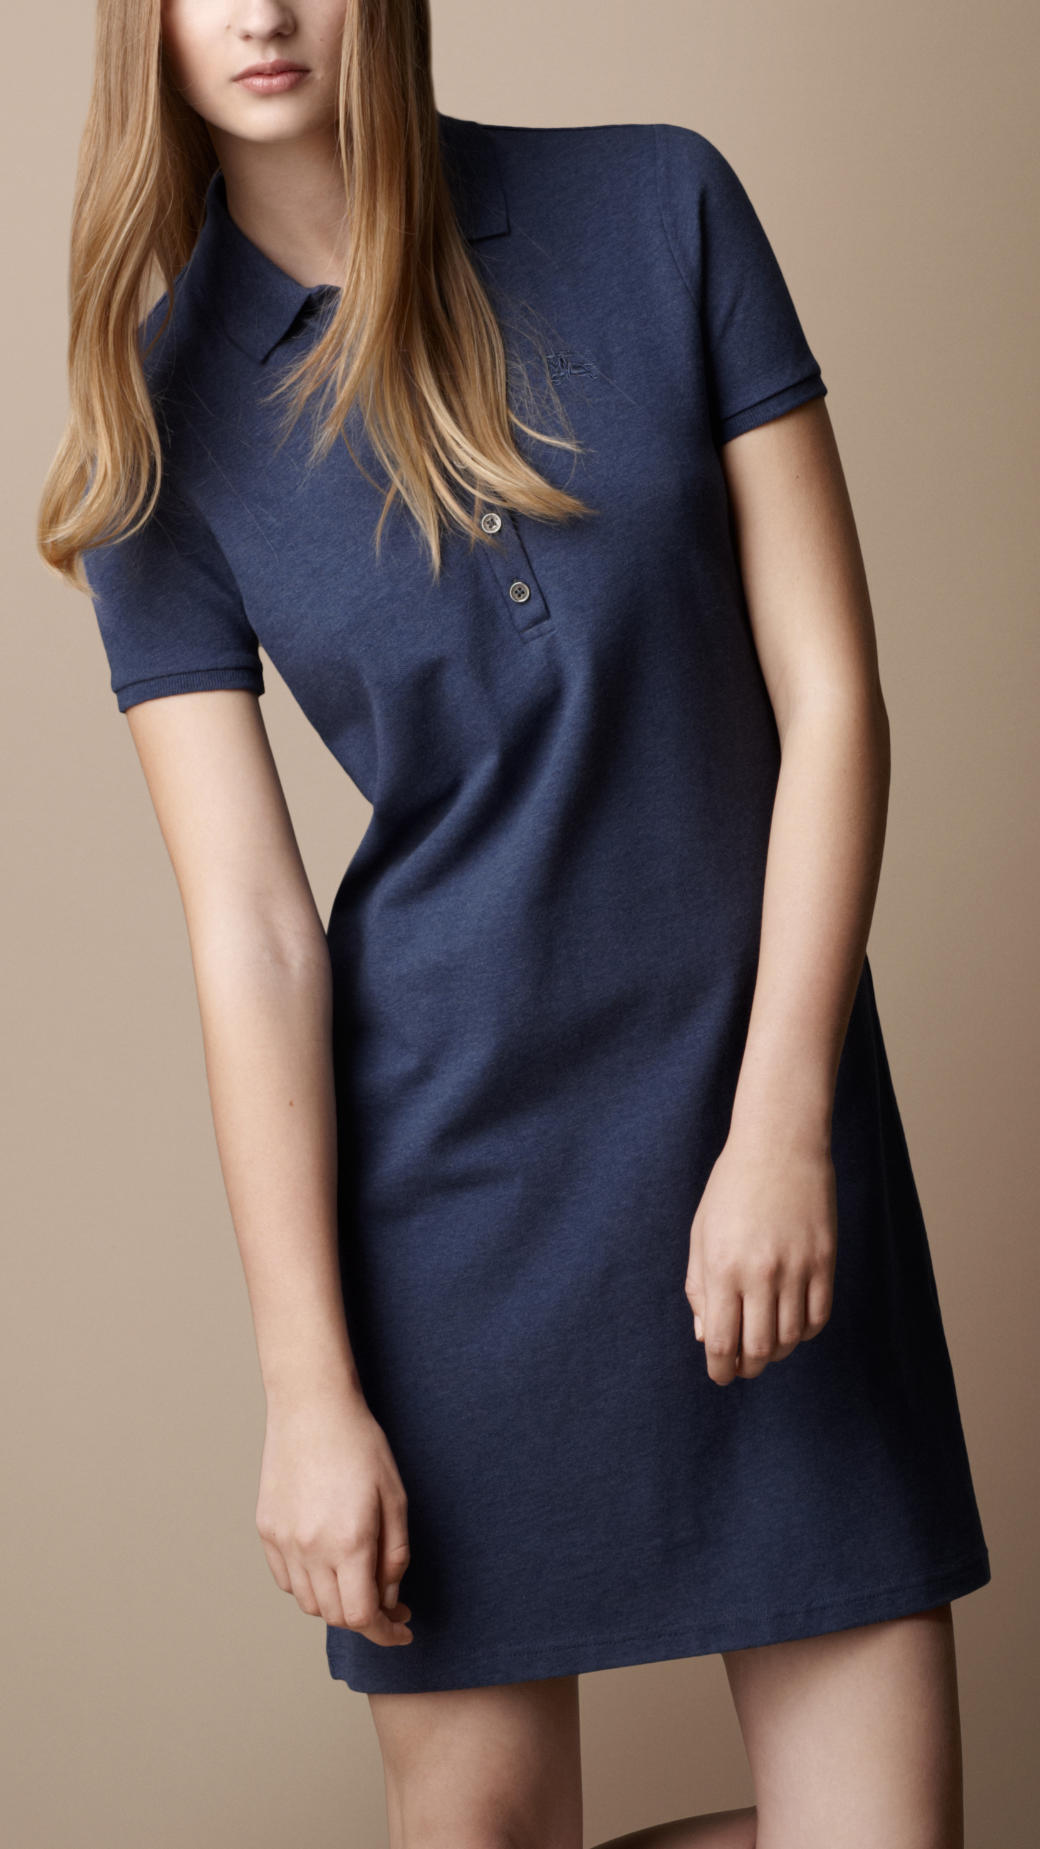 c5385fc8f380 Burberry Brit Cotton Pique Polo Dress in Blue - Lyst